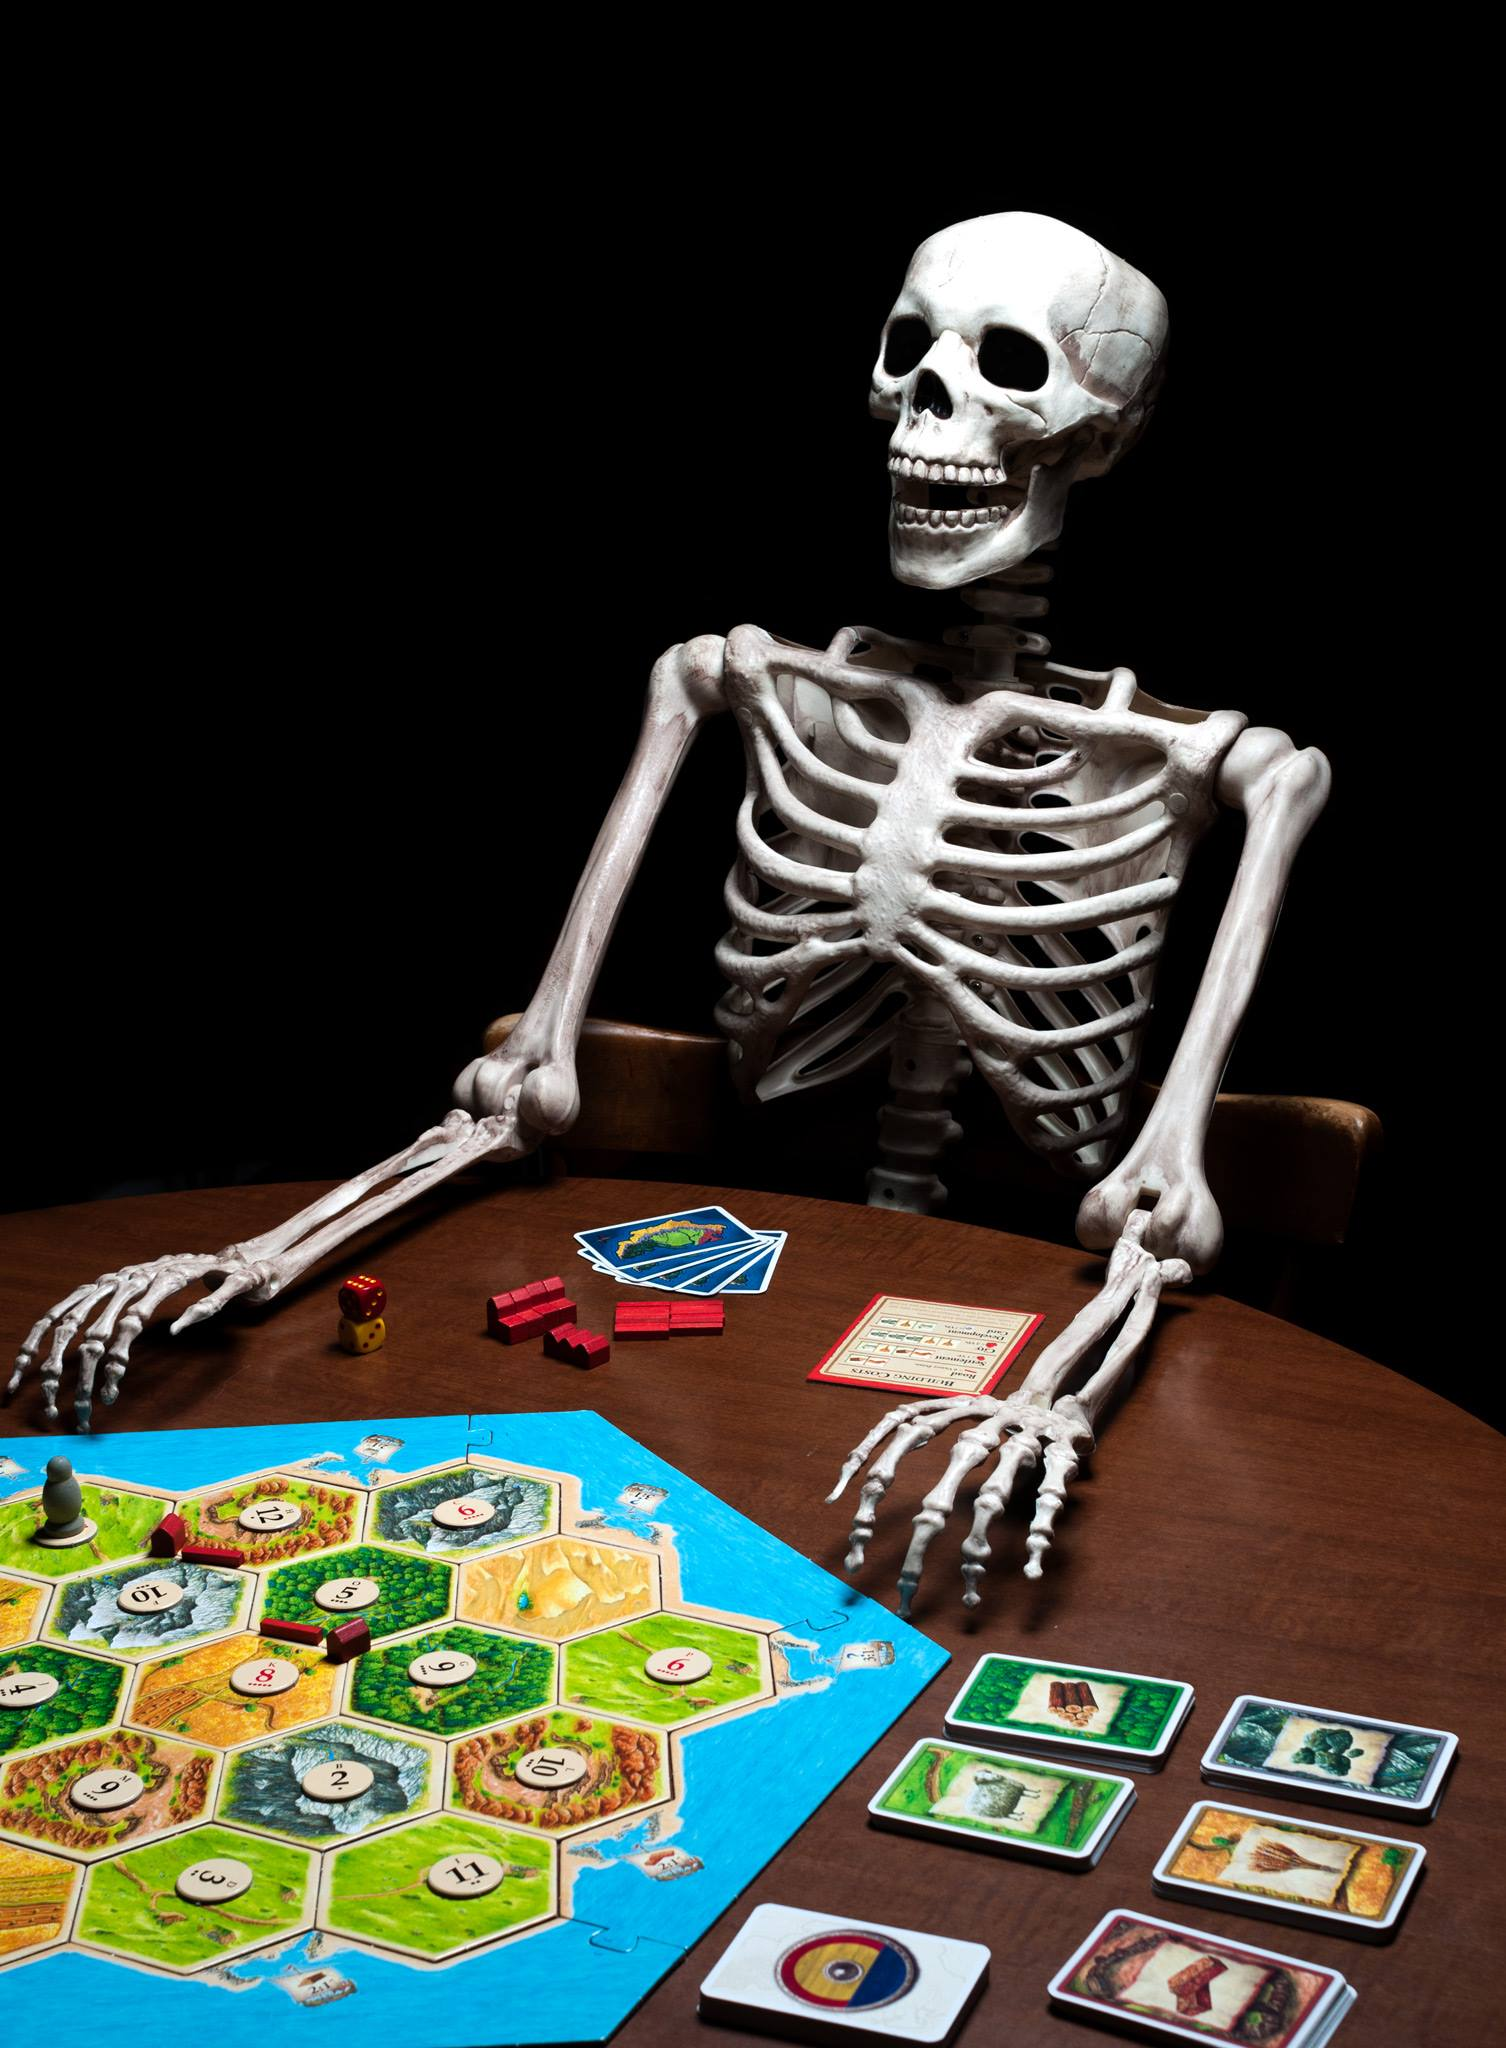 Skeleton waiting for player with AP to take their turn